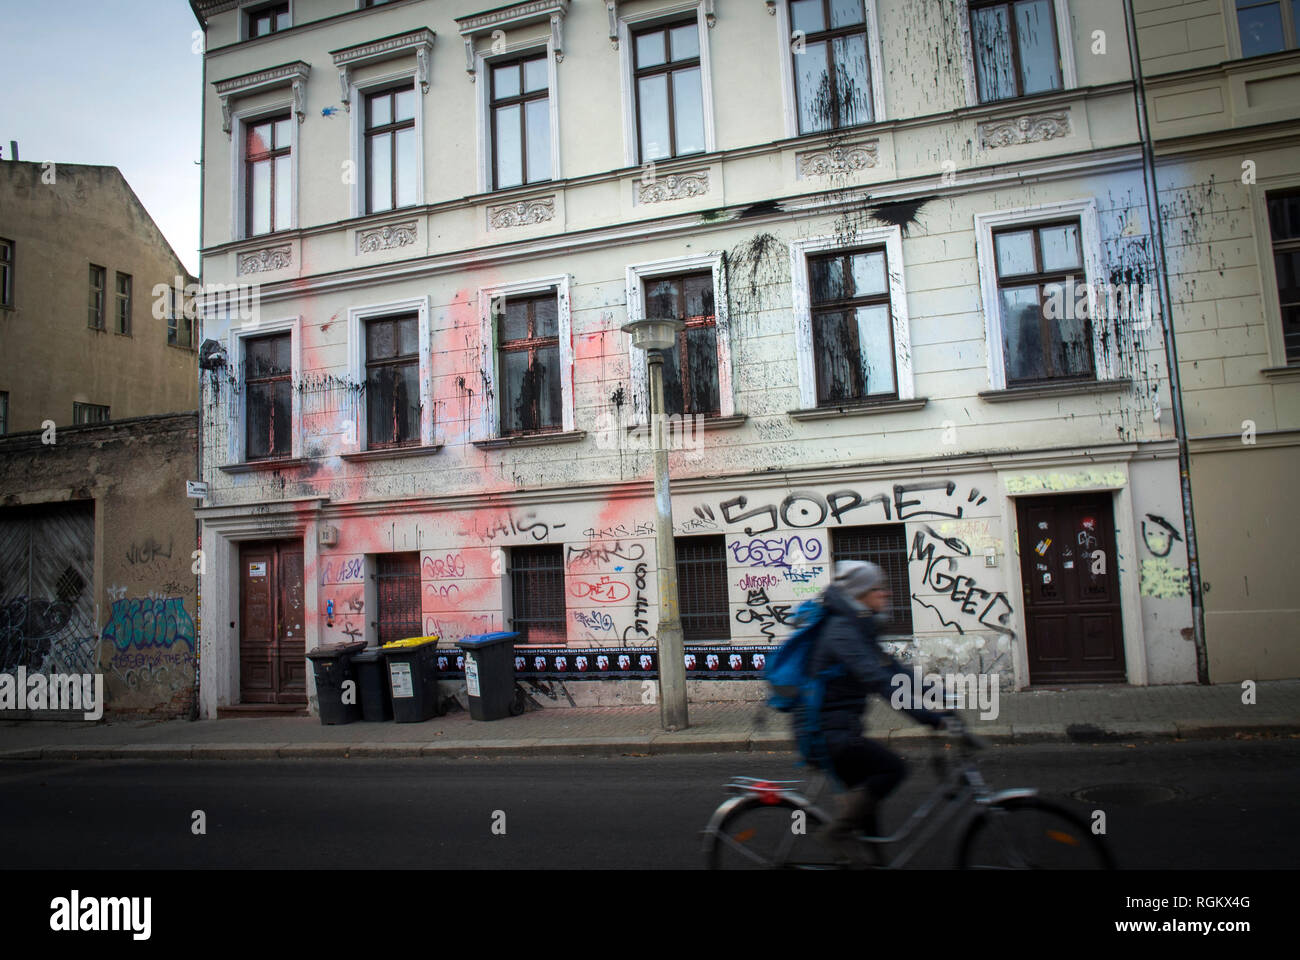 The House of the Identitarian Movement, Halle (Saale) is a center and residential project of the right-wing identity movement in Adam-Kuckhoff-Straße, - Stock Image